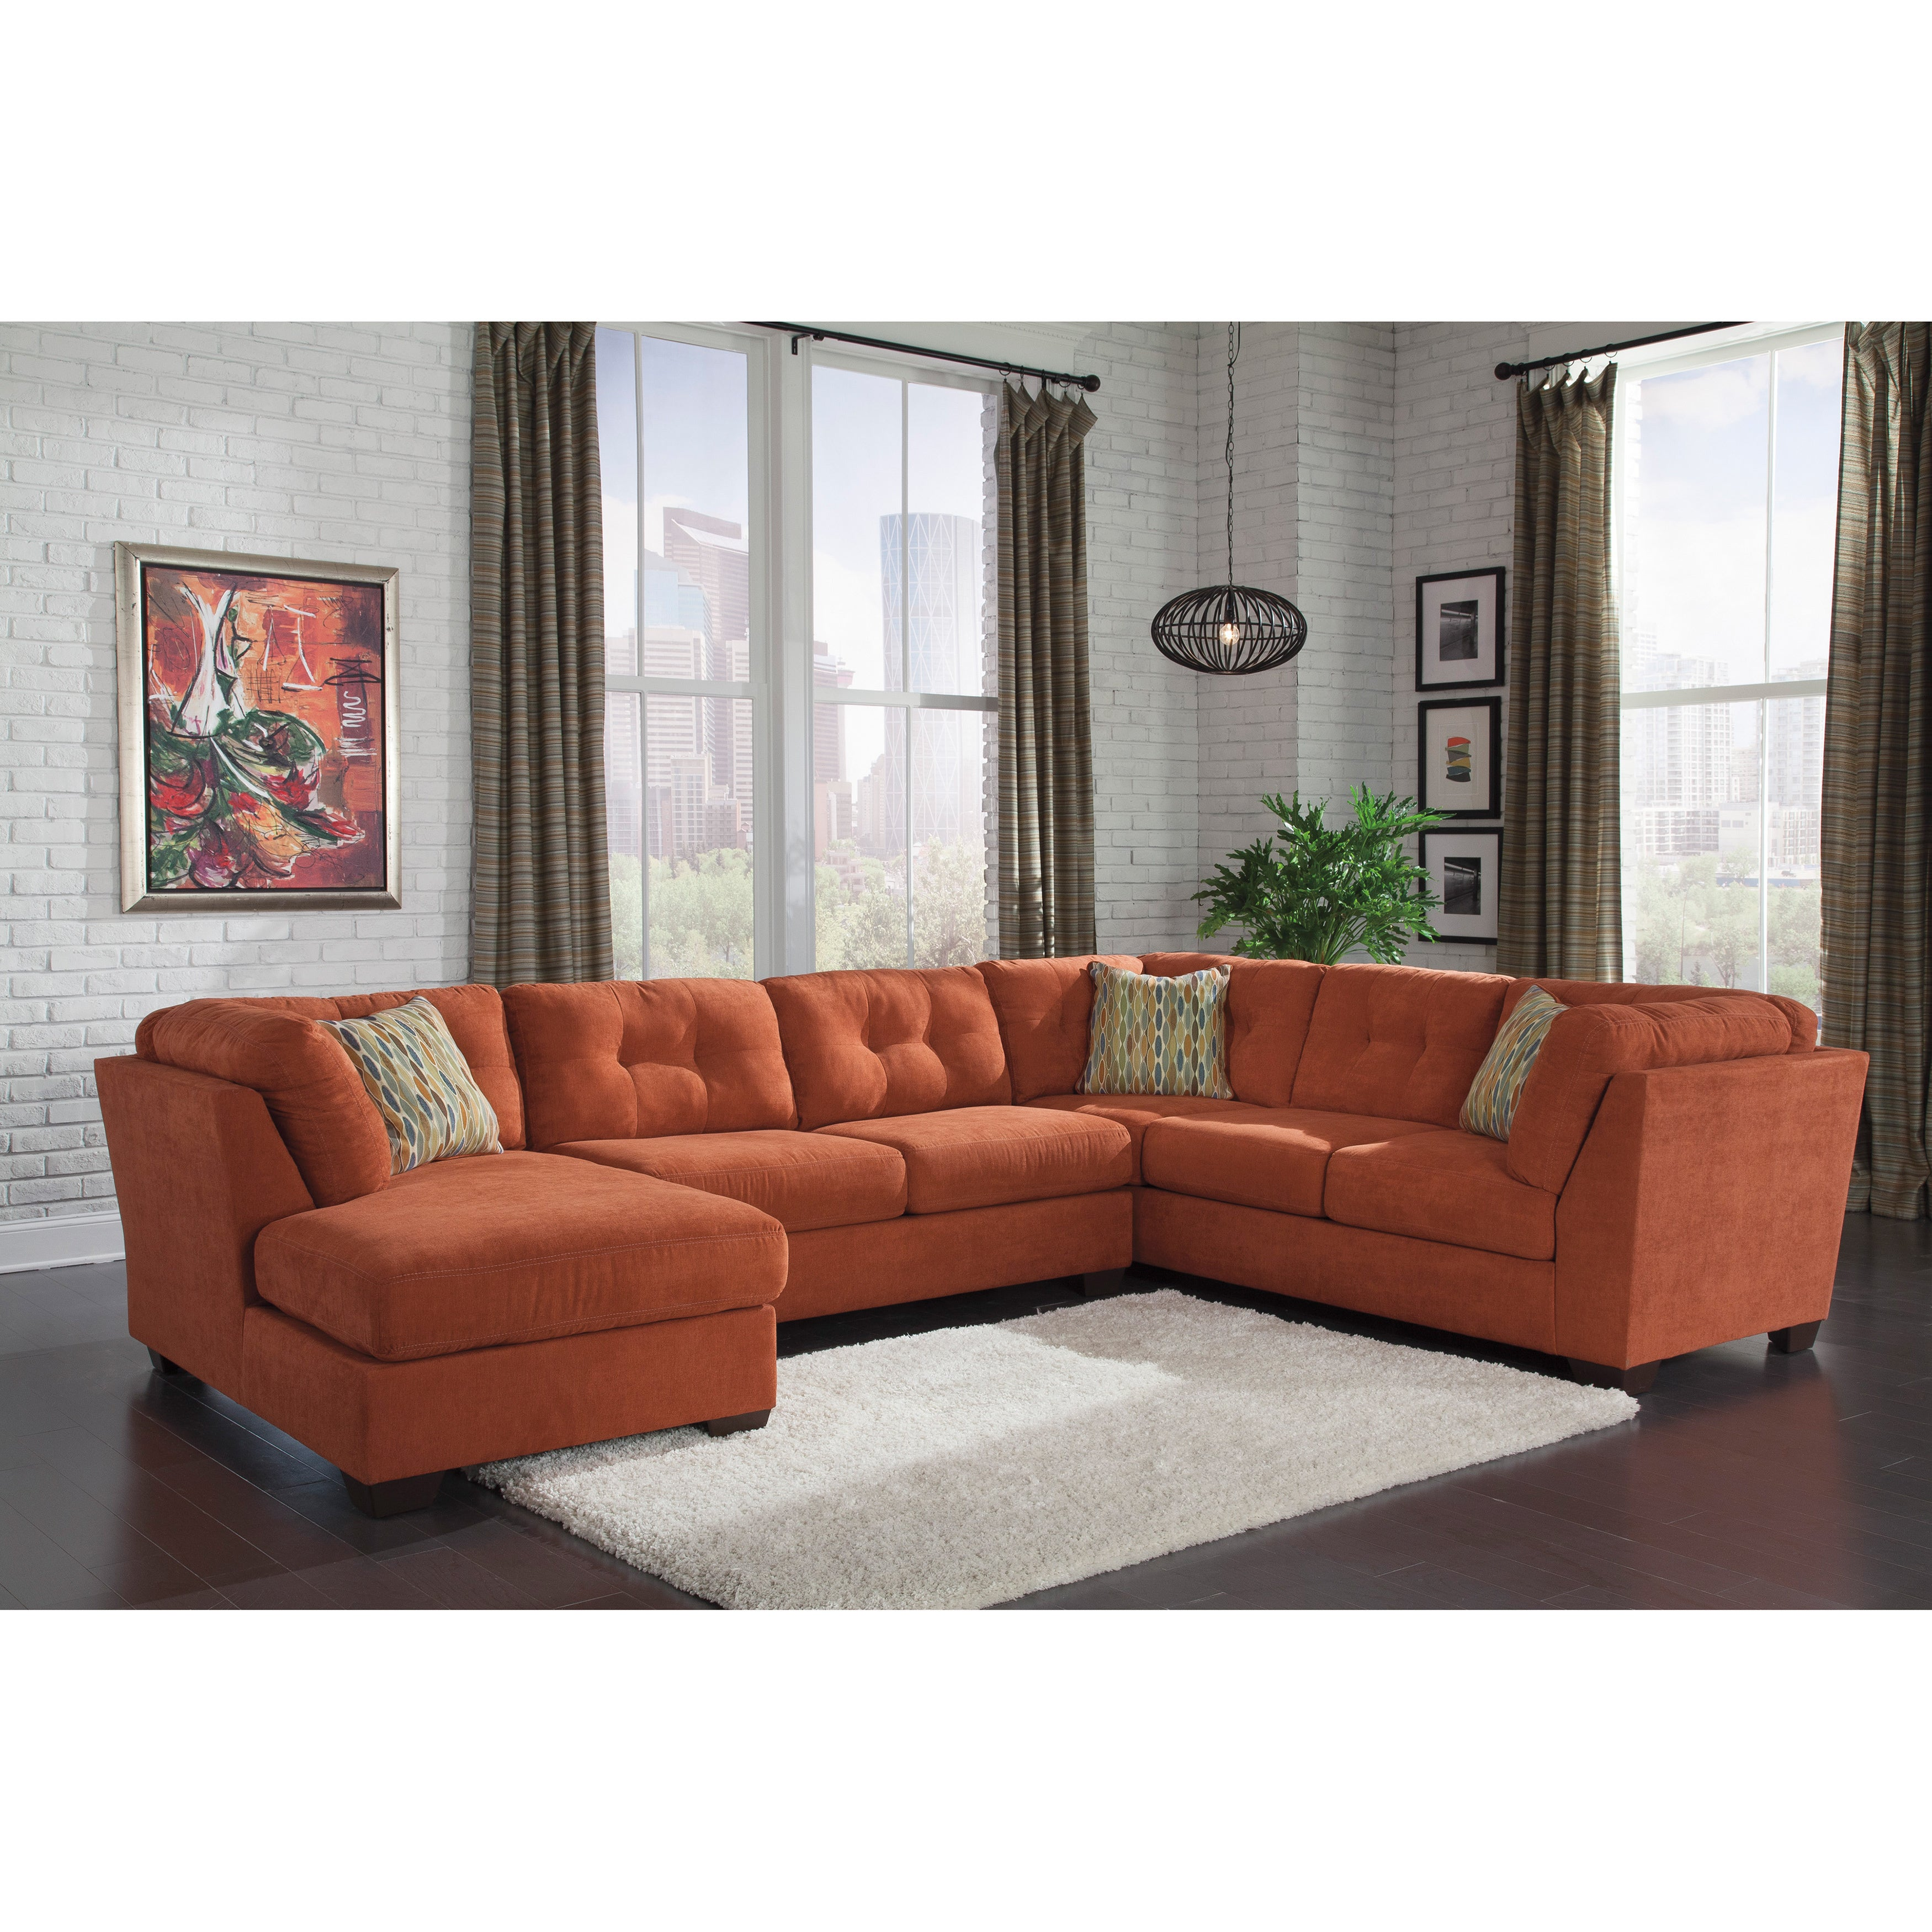 Fantastic Signature Design By Ashley Delta City 3 Piece Corner Chaise Sofa And Armless Loveseat Sectional Beatyapartments Chair Design Images Beatyapartmentscom